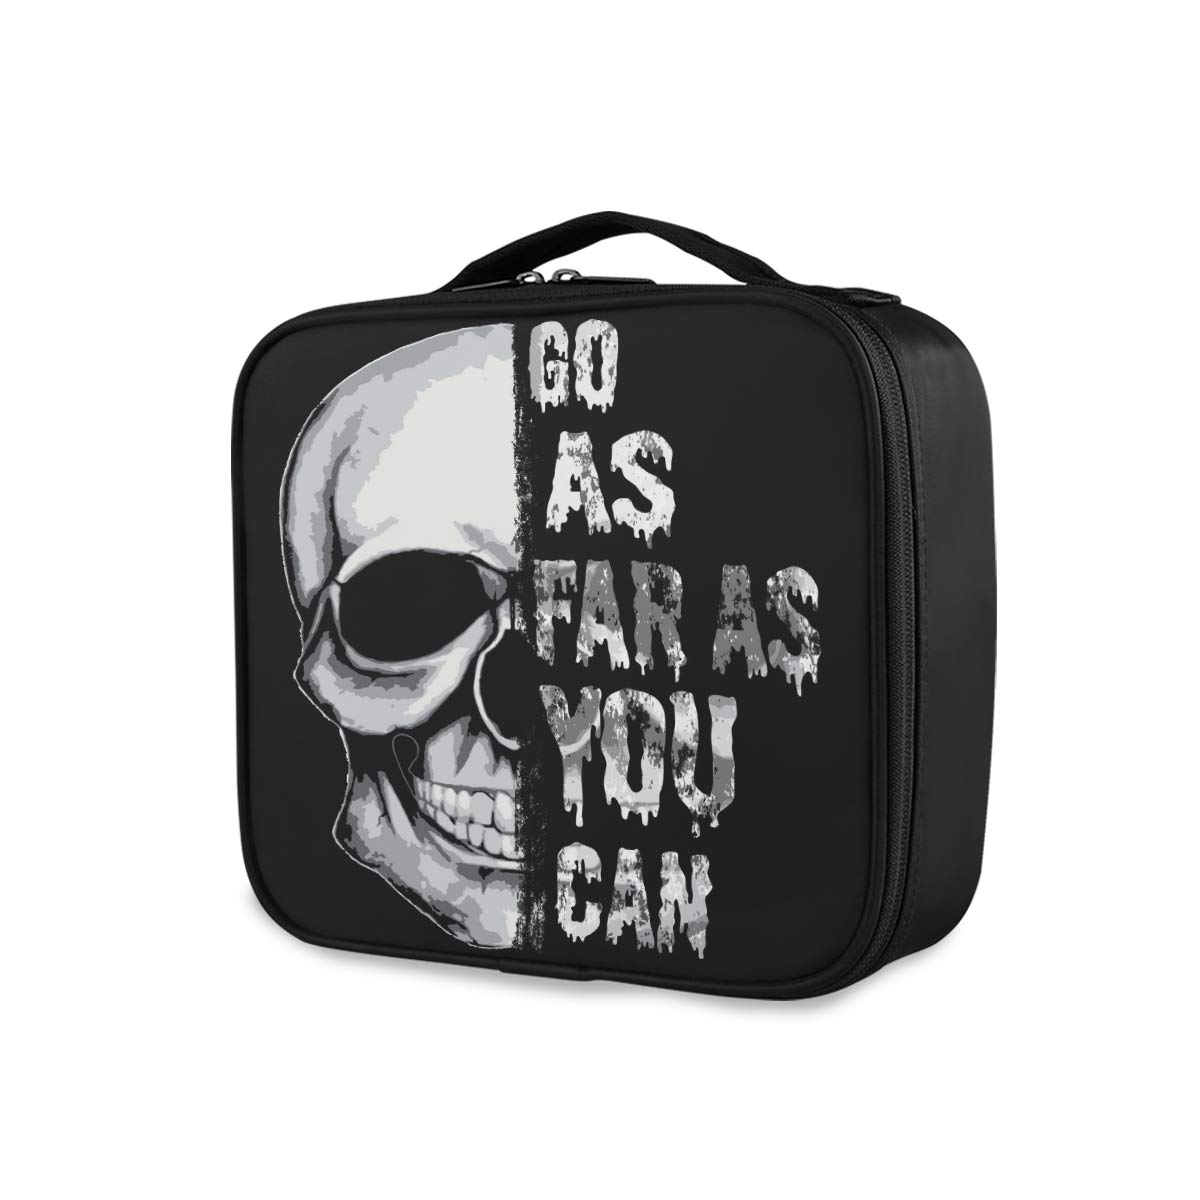 ALAZA Makeup Case Skull Cosmetic Bag Organizer Travel Portable Storage Toiletry Bag Makeup Train Case with Adjustable Dividers for Teens Girls Women